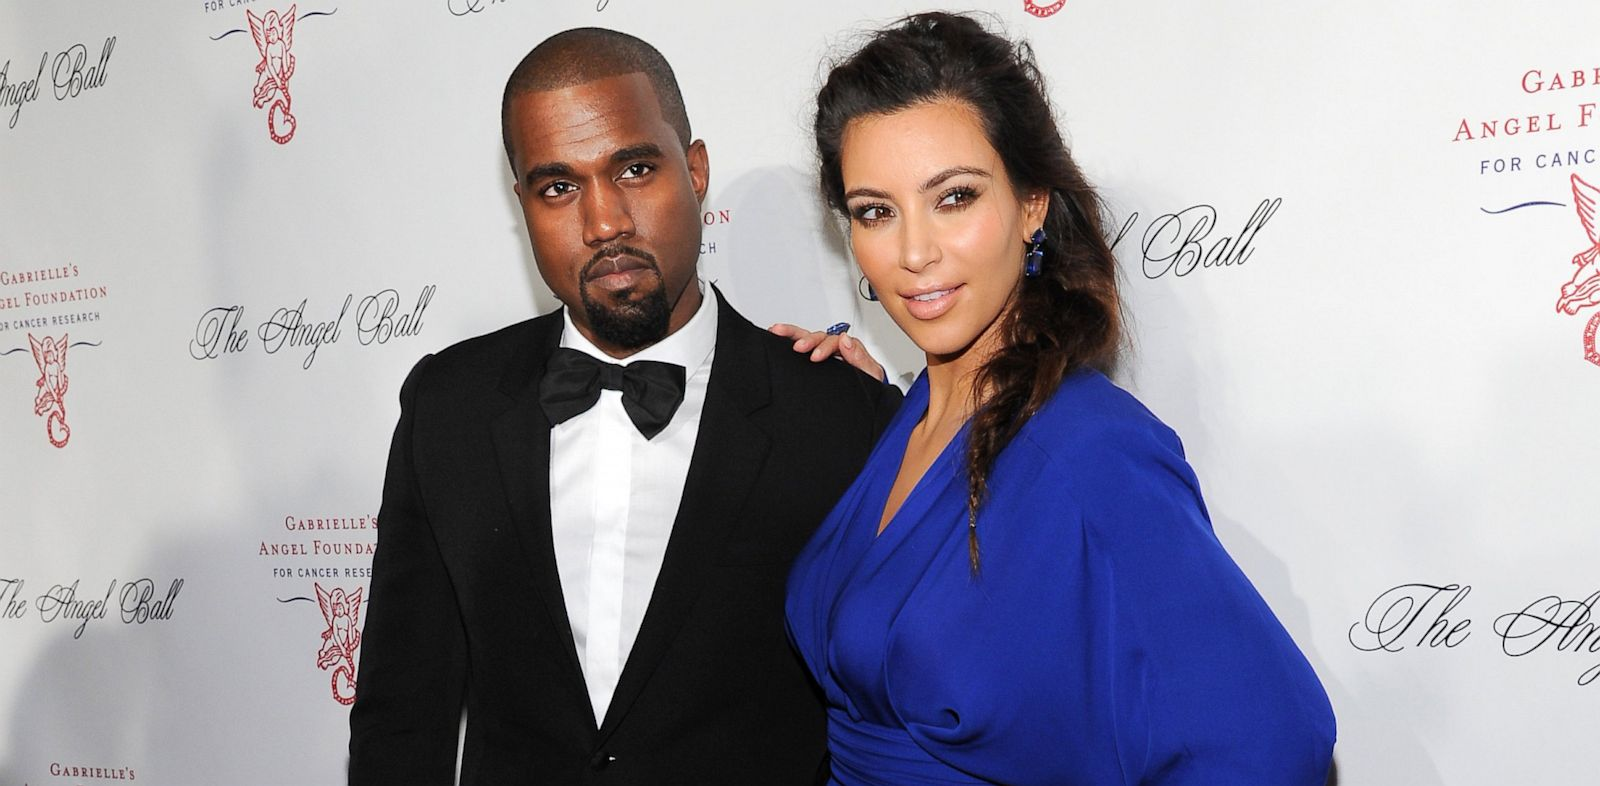 PHOTO: Kanye West and Kim Kardashian